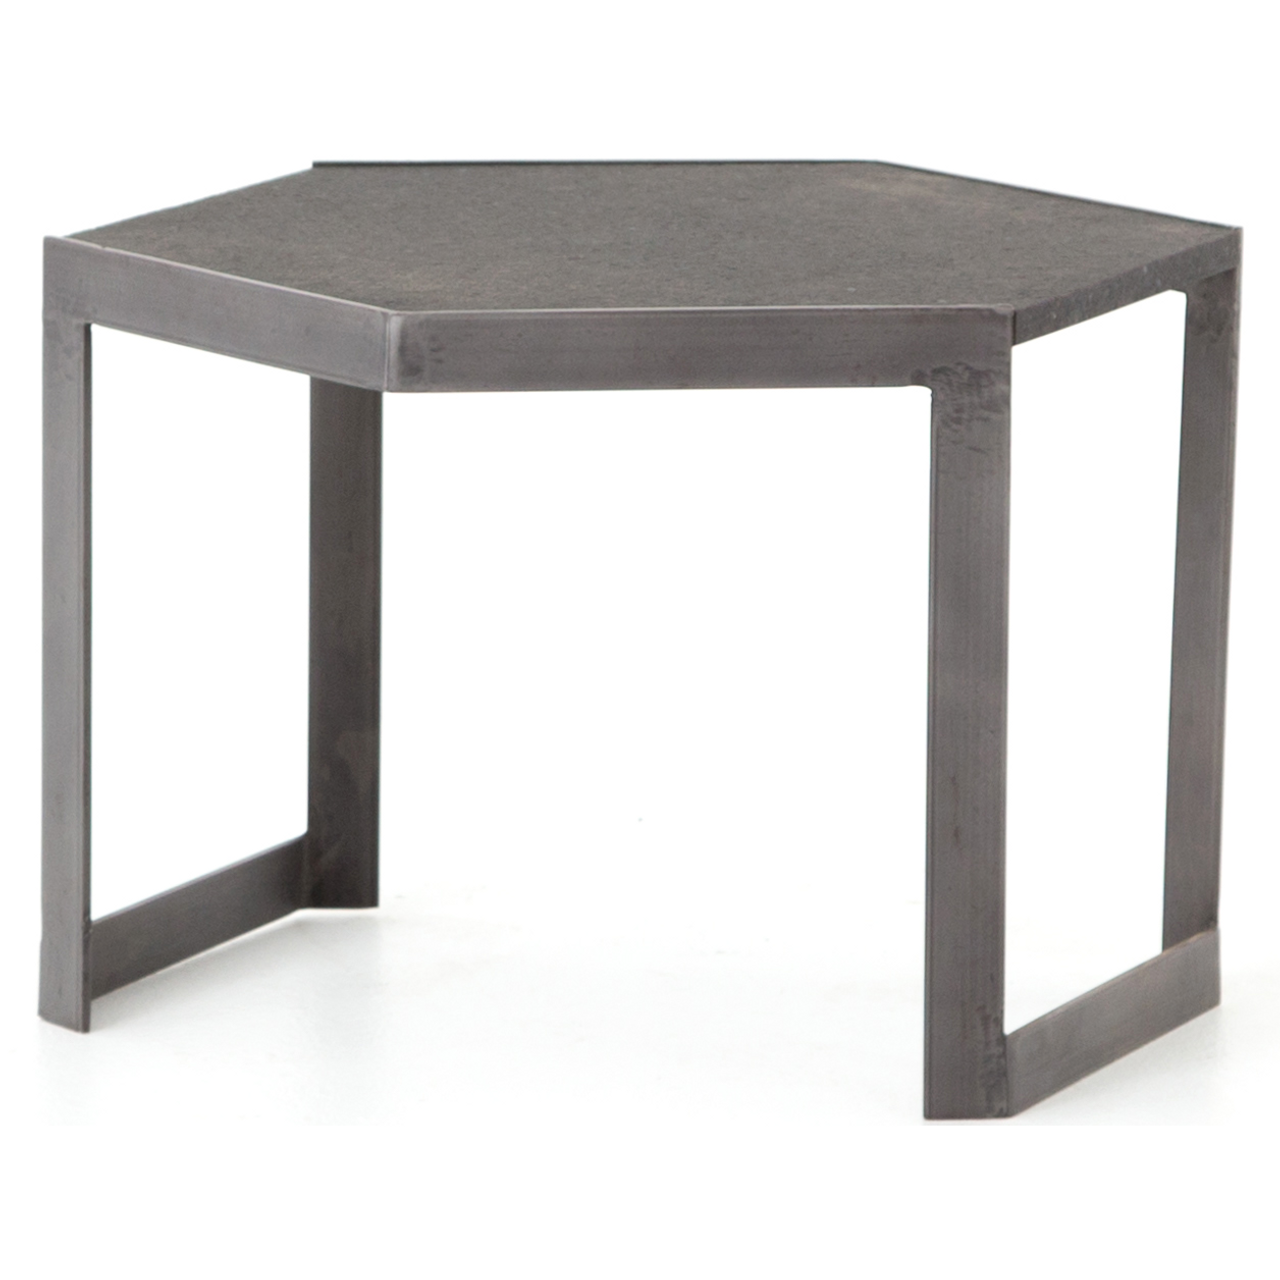 Clint iron granite top hexagonal bunching coffee table zin home clint iron granite top hexagonal bunching coffee table geotapseo Gallery